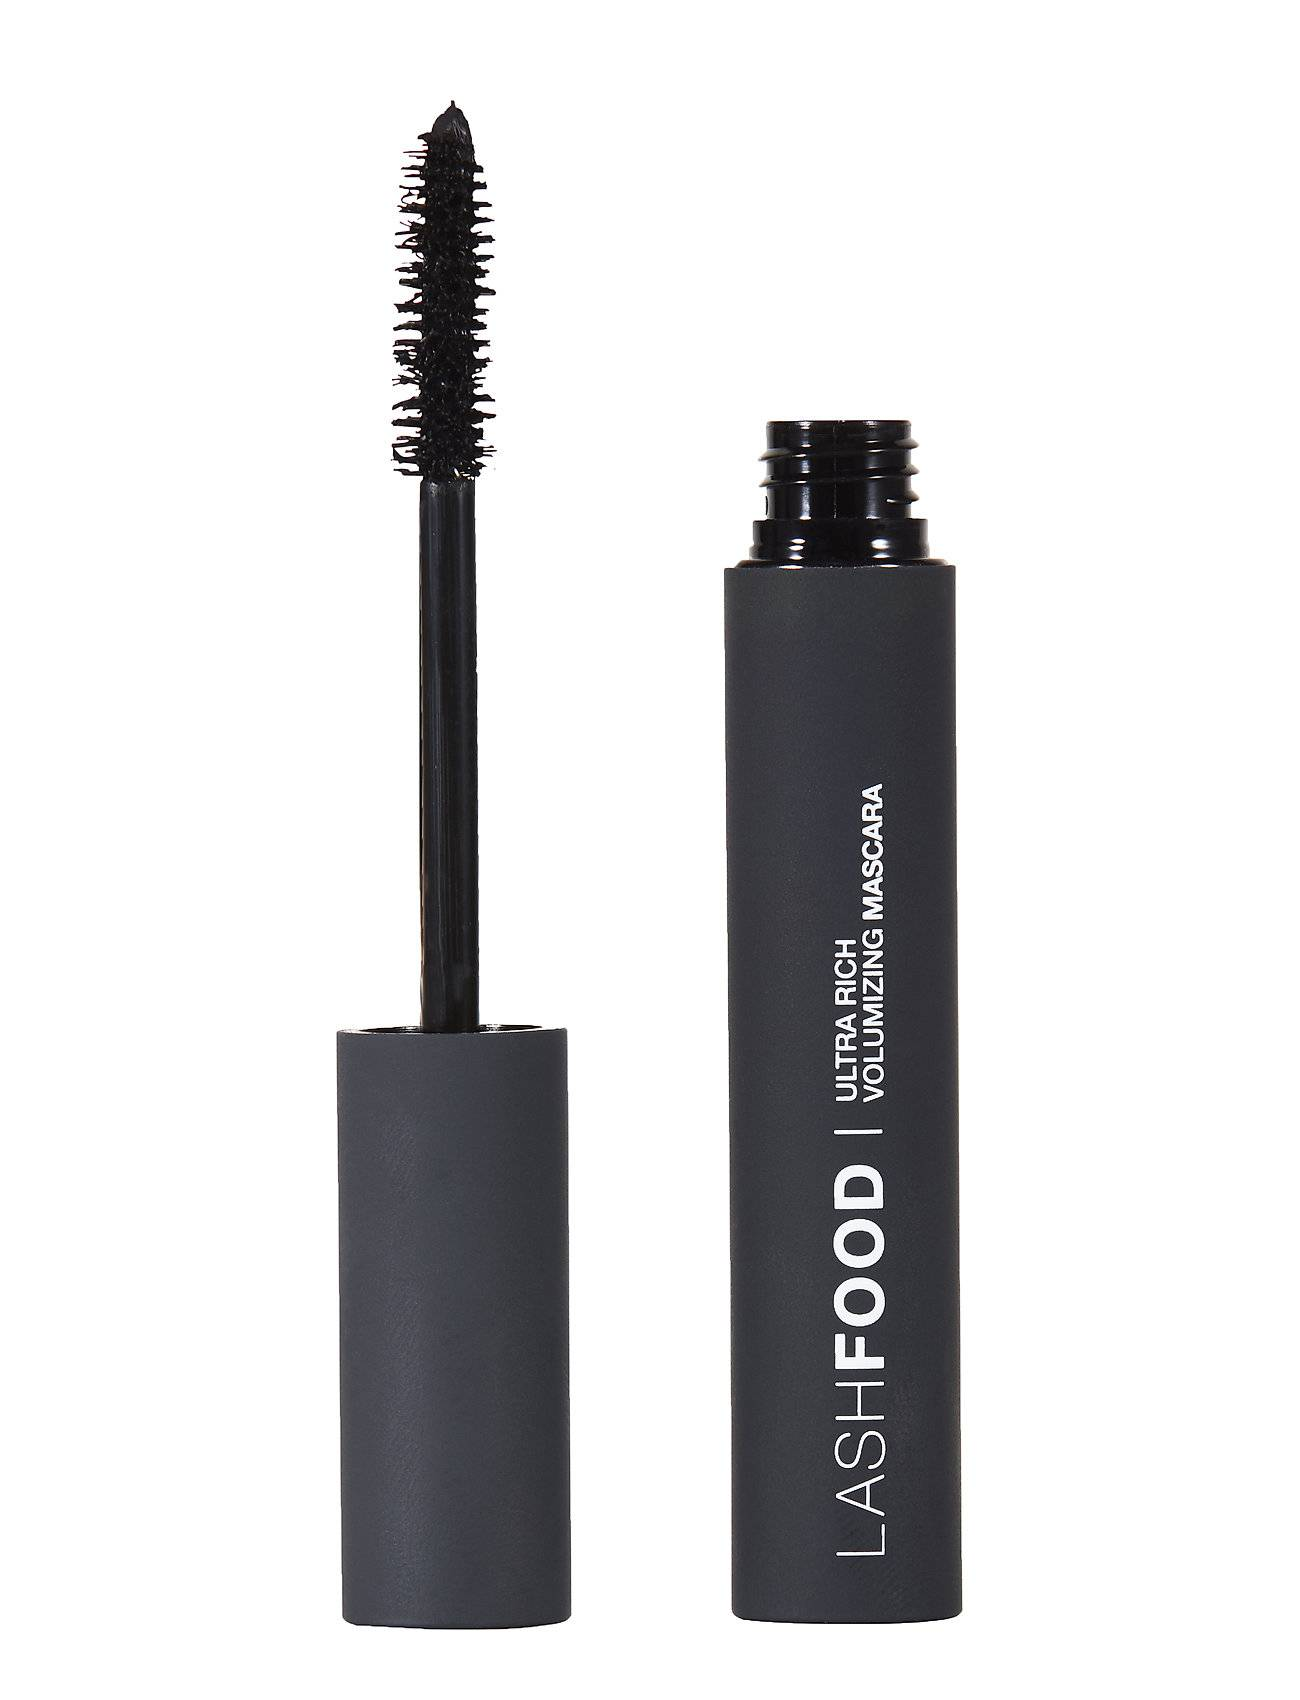 Lashfood Ultra Rich Volumizing Mascara